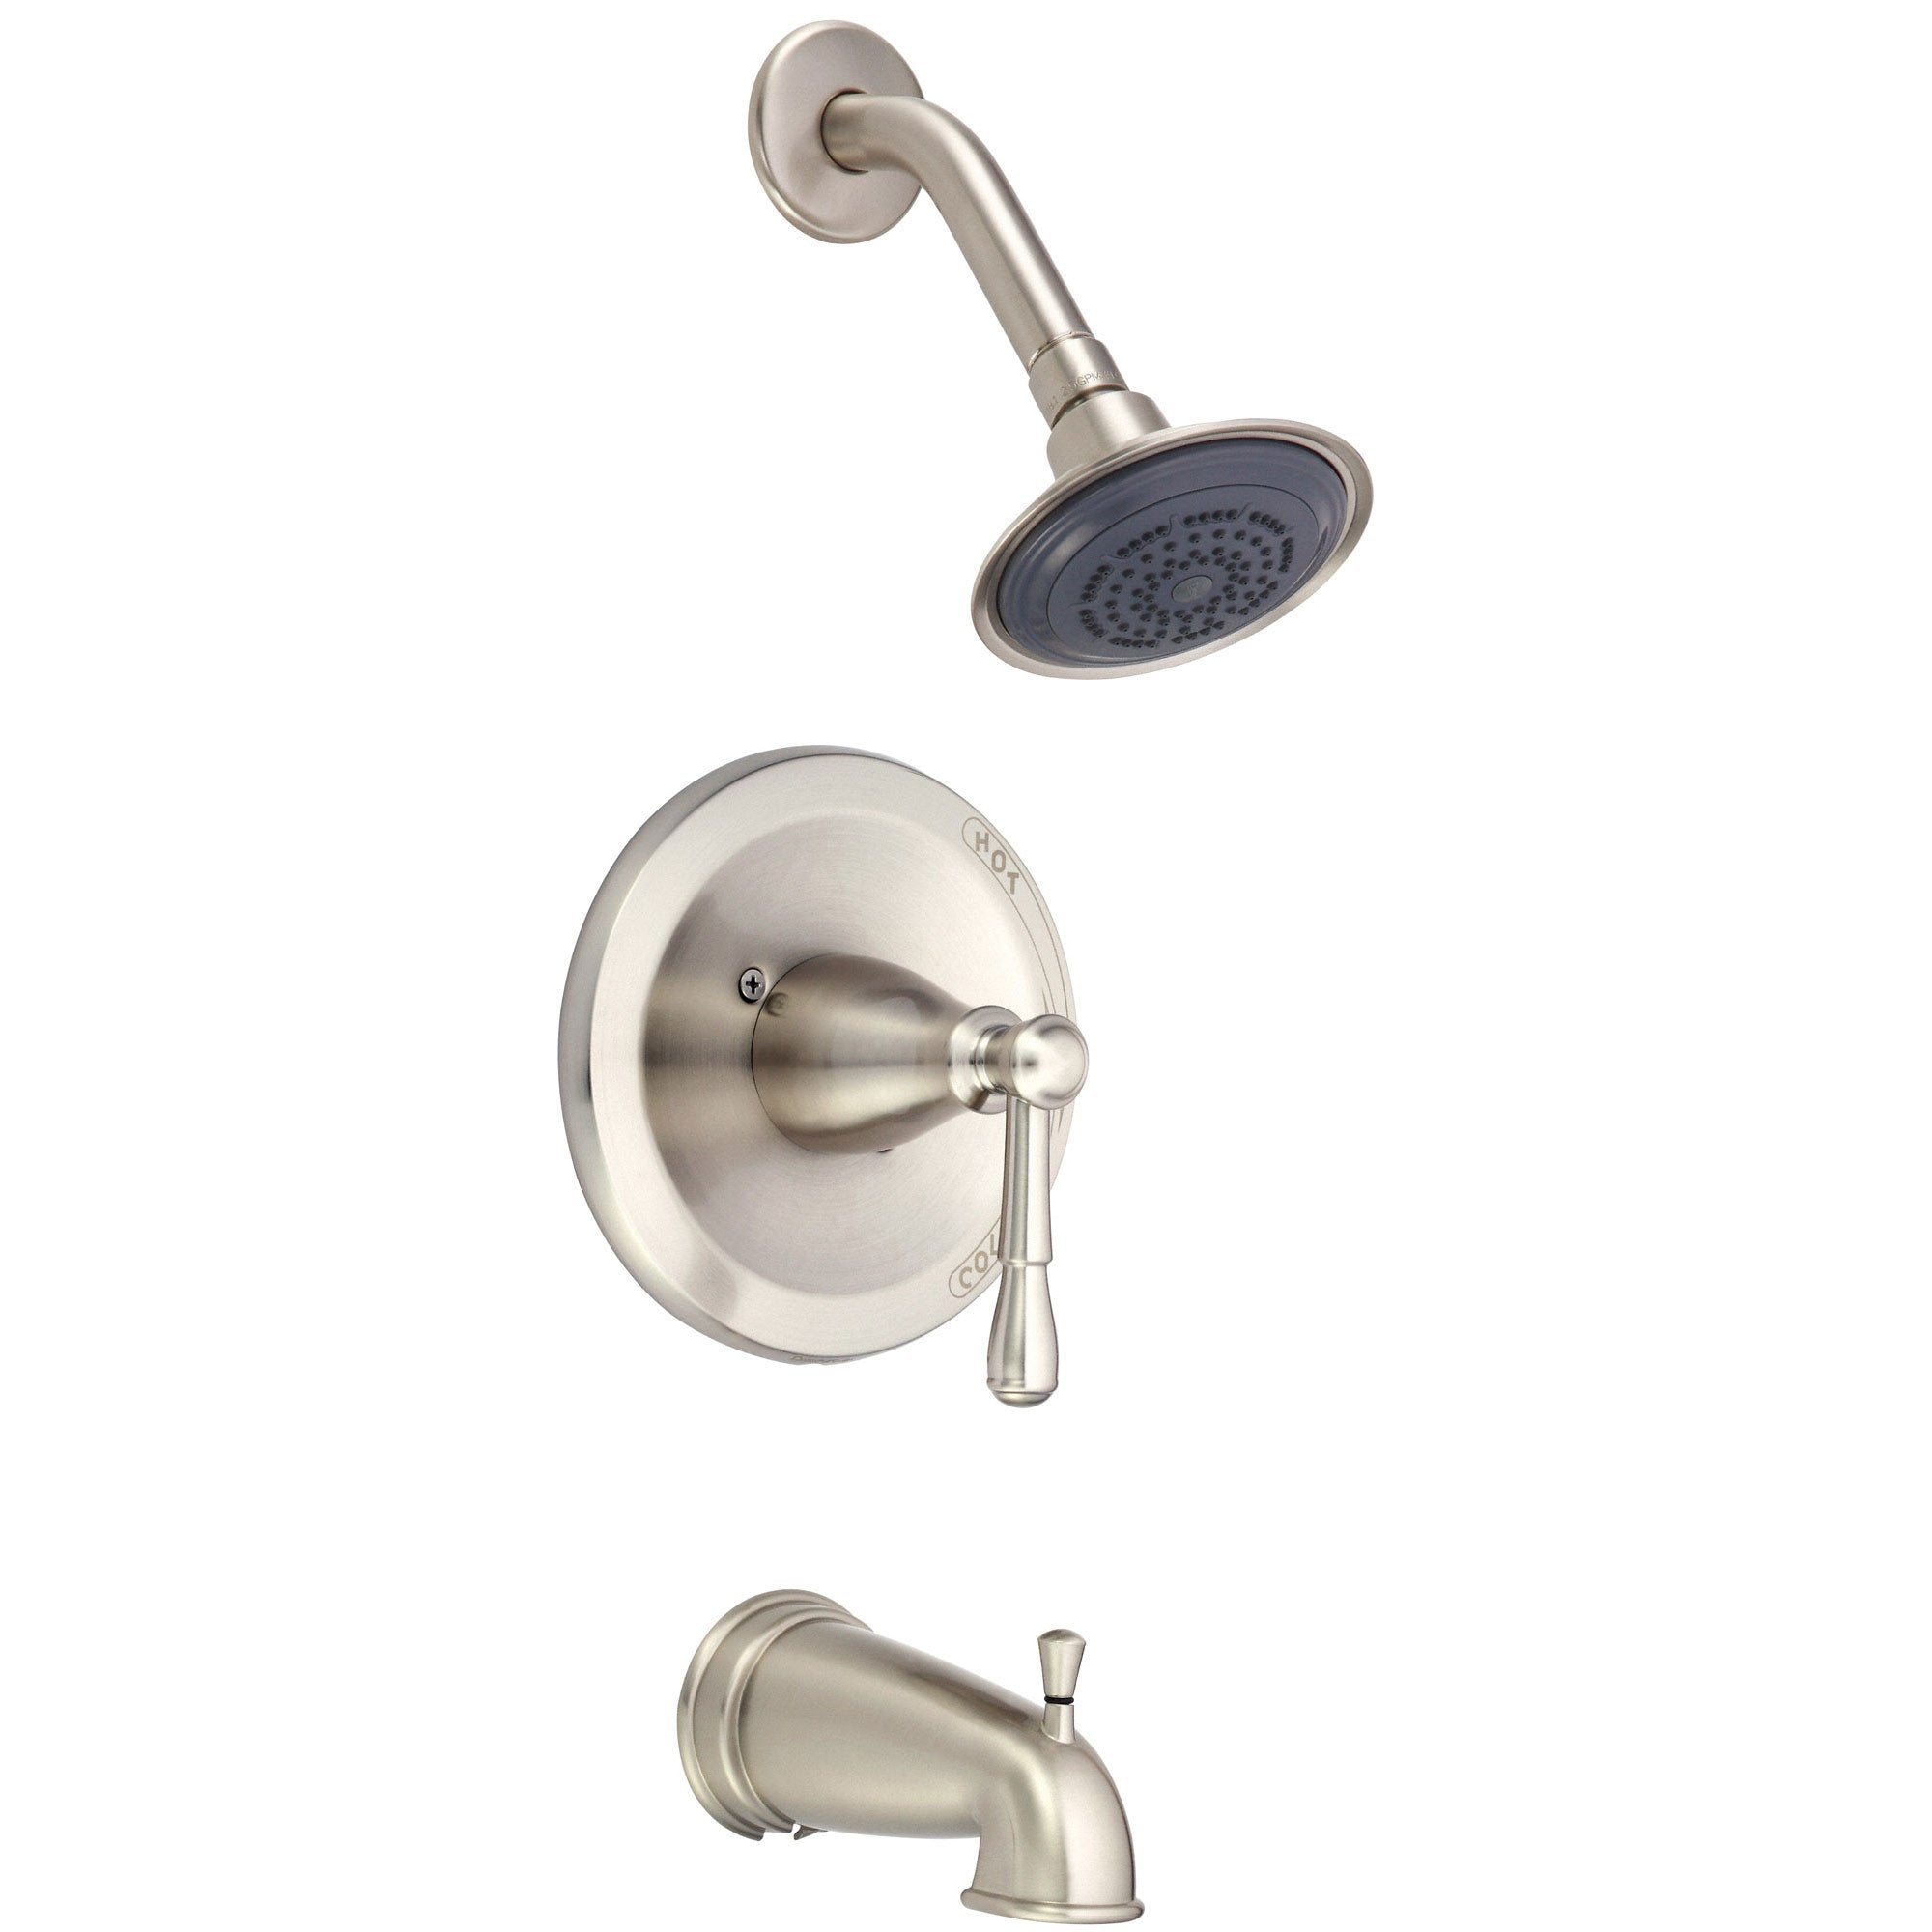 Danze Eastham Brushed Nickel Single Handle Tub and Shower Combo Faucet INCLUDES Rough-in Valve